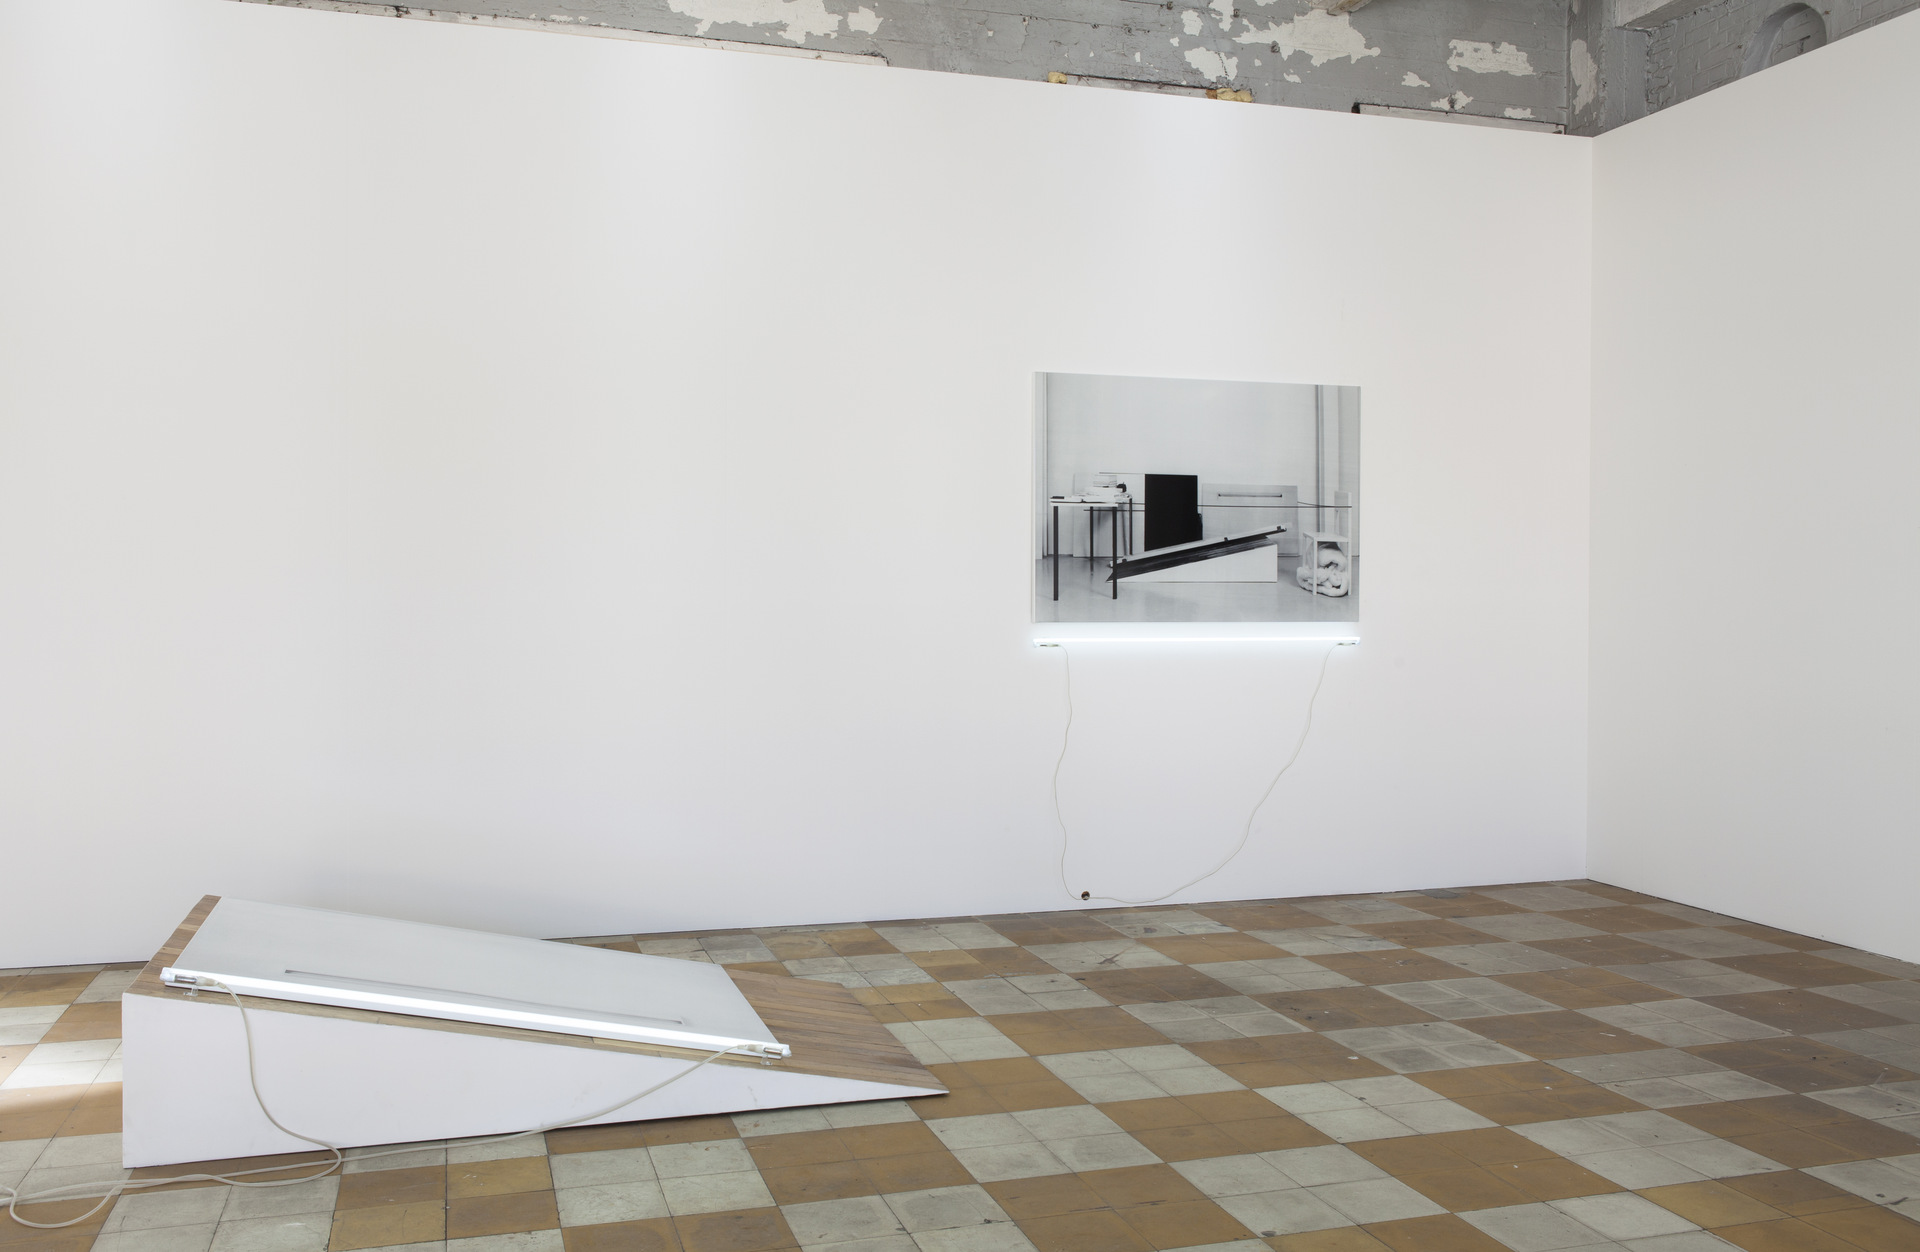 Laura Lamiel, 'Untitled', 2000 & 'La Calle (the wedge)', 2000-2013, in 'The Camera's Blind Spot II', installation view, Extra City Kunsthal, 2015 © We Document Art